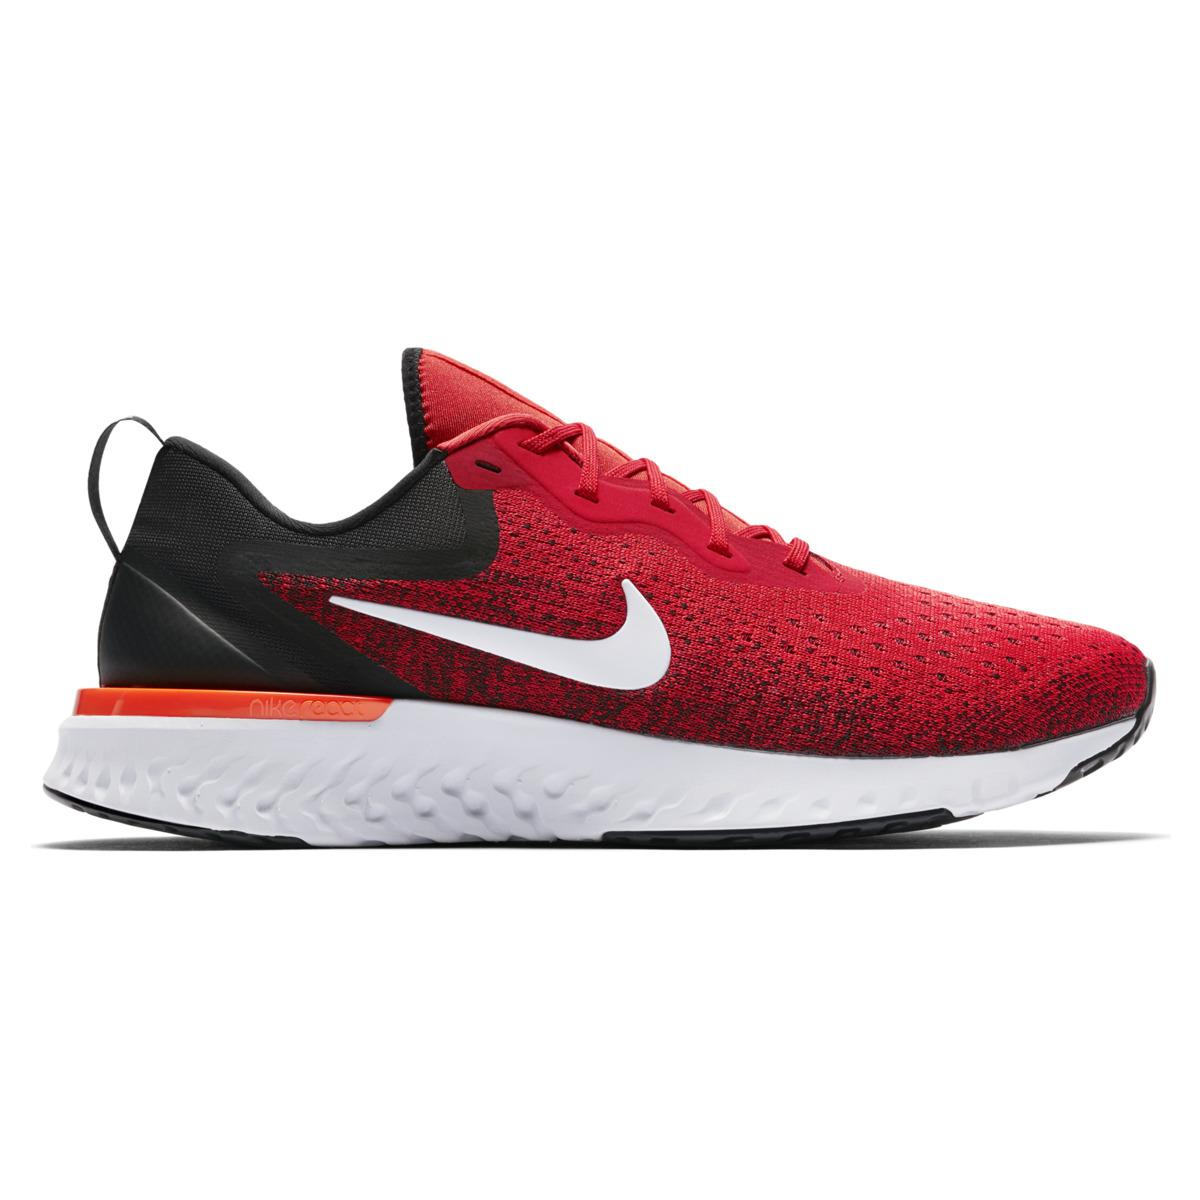 db5c5e19a7e8 Nike Odyssey React Men s Running Shoe in Red for Men - Lyst